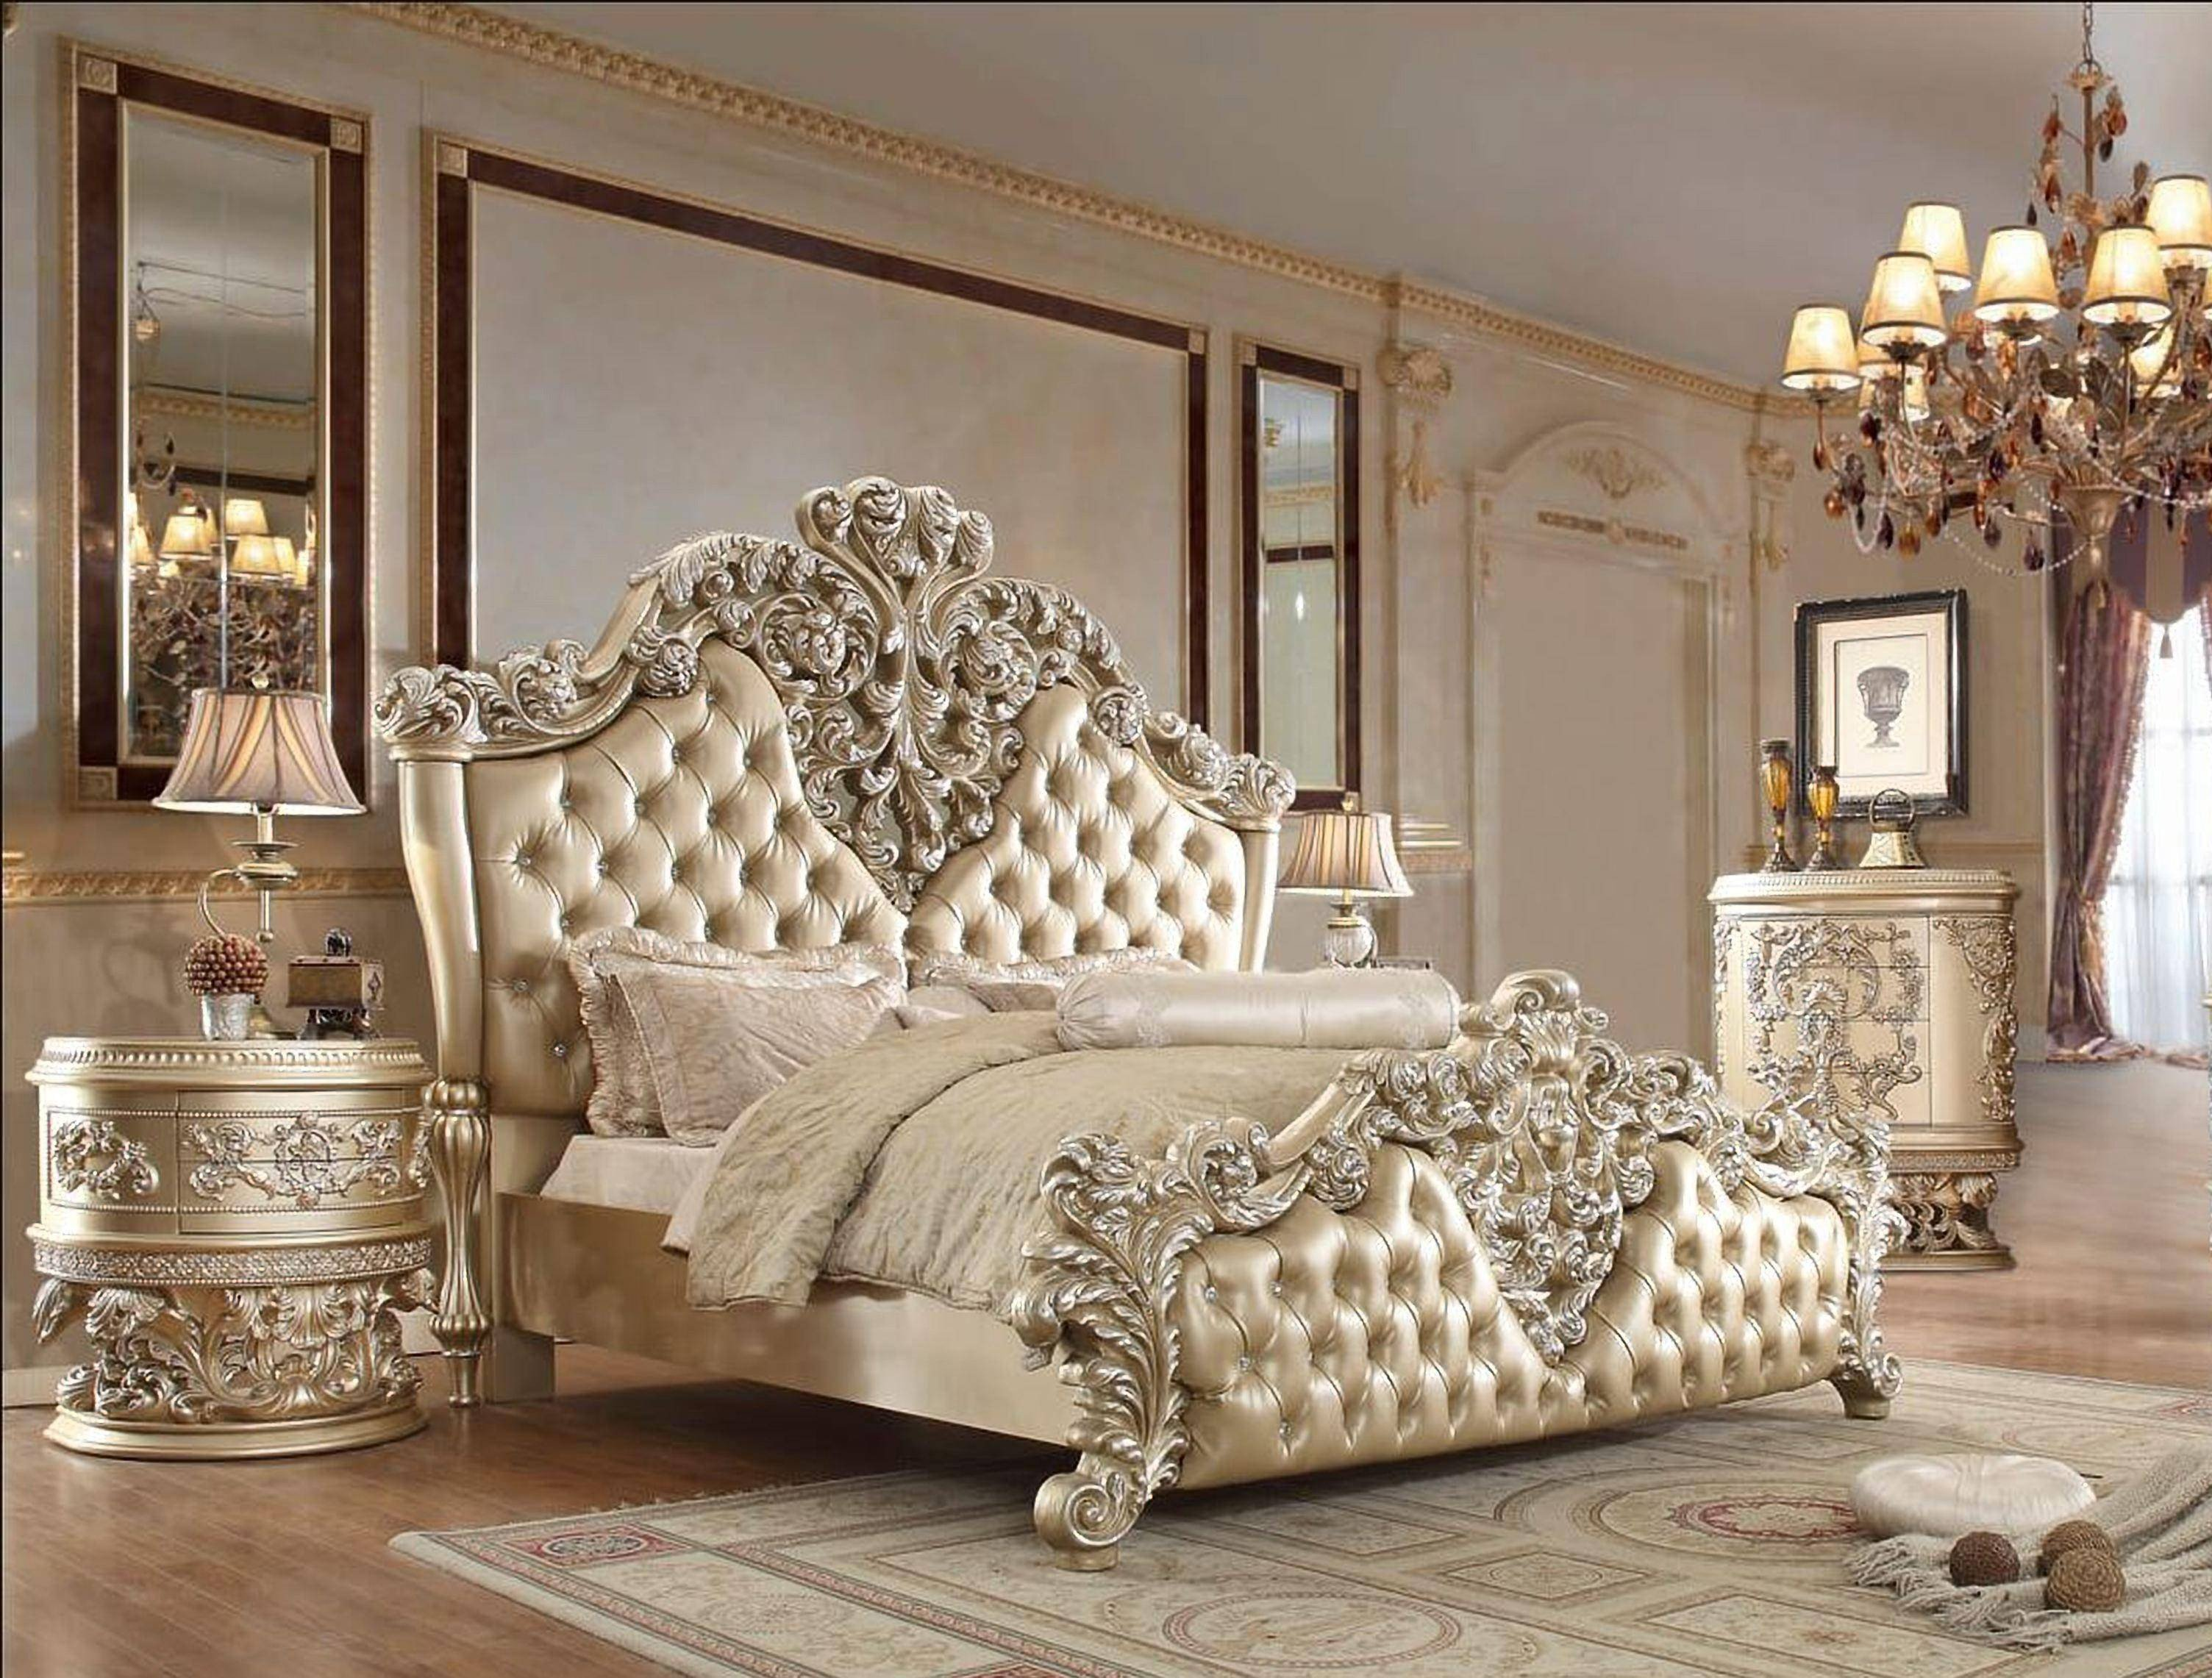 Cal King Bedroom Set Inspirational Luxury Belle Silver Cal King Bedroom Set 5 Pcs Homey Design